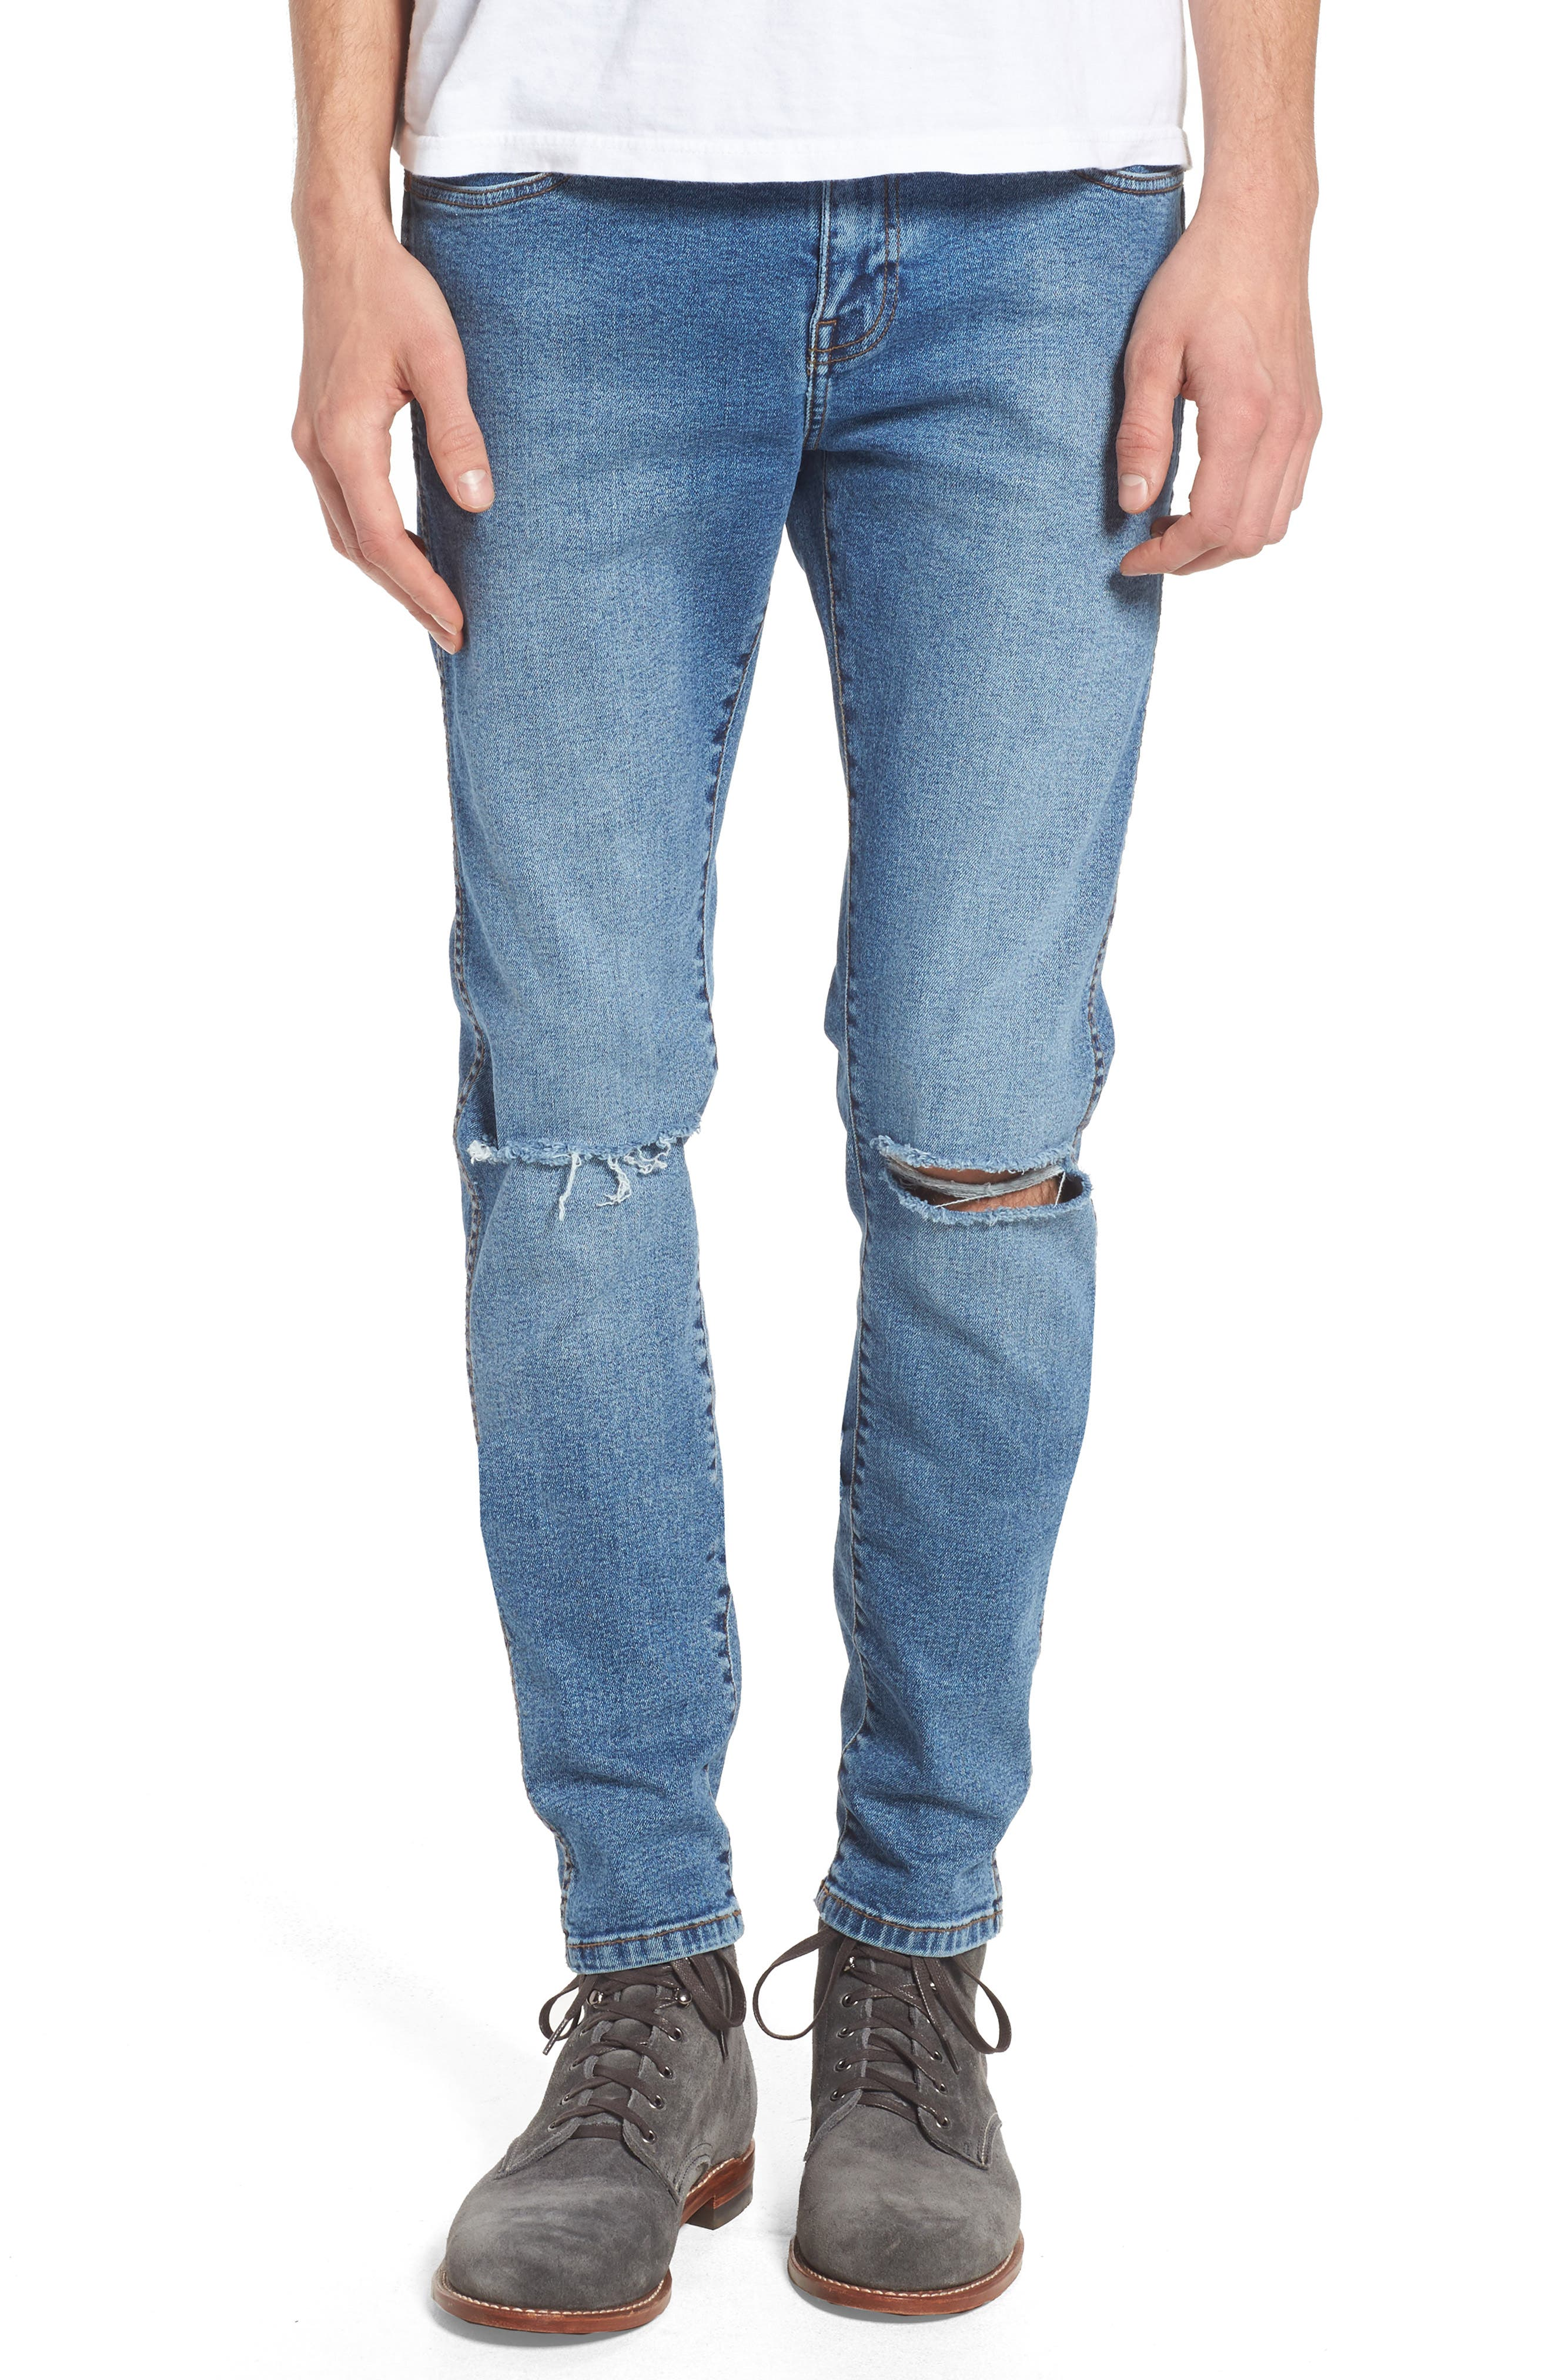 Men\'s View All: Clothing, Shoes & Accessories   Nordstrom